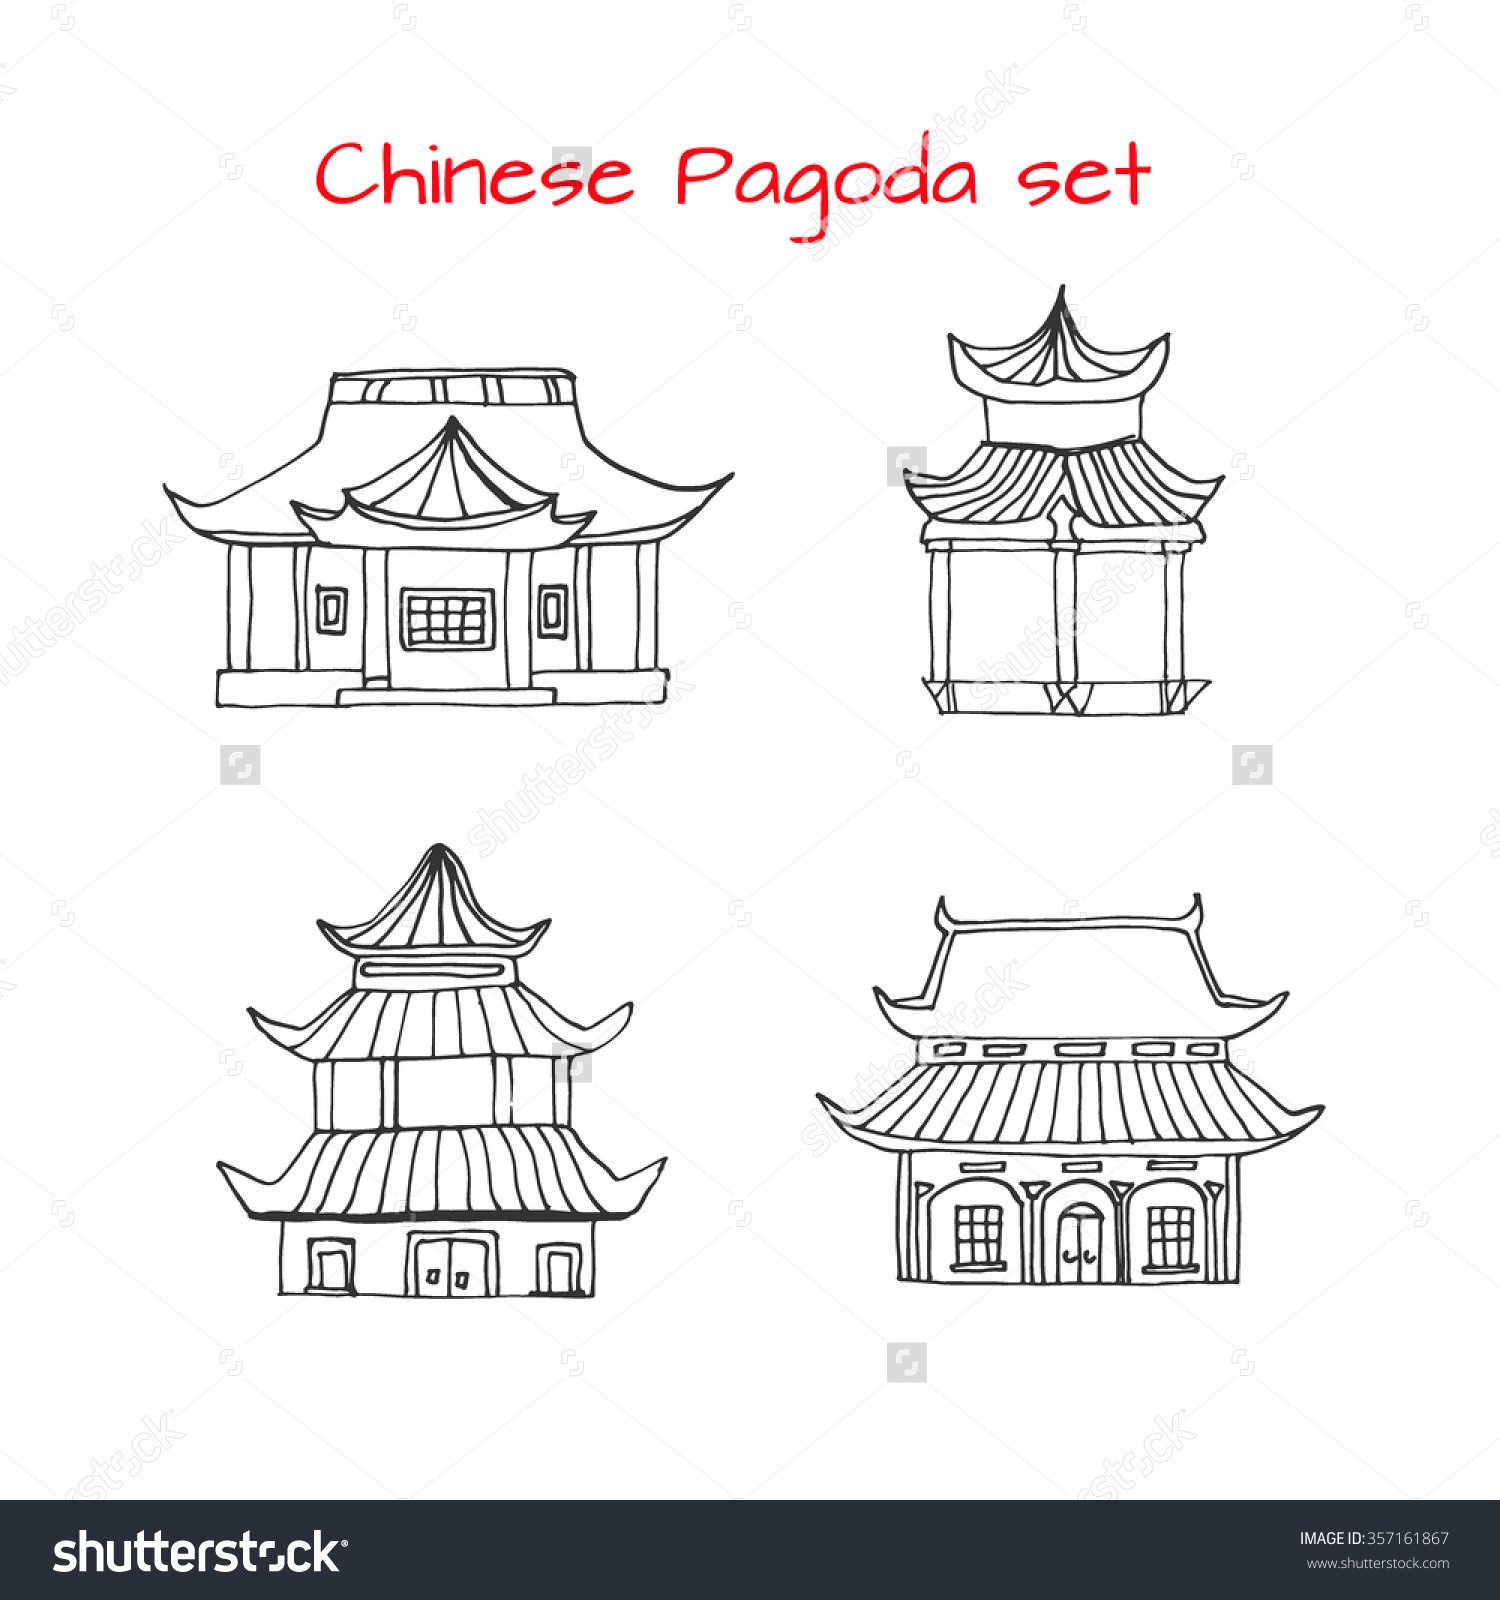 Pagoda clipart chinese house Chinese set Hand detached